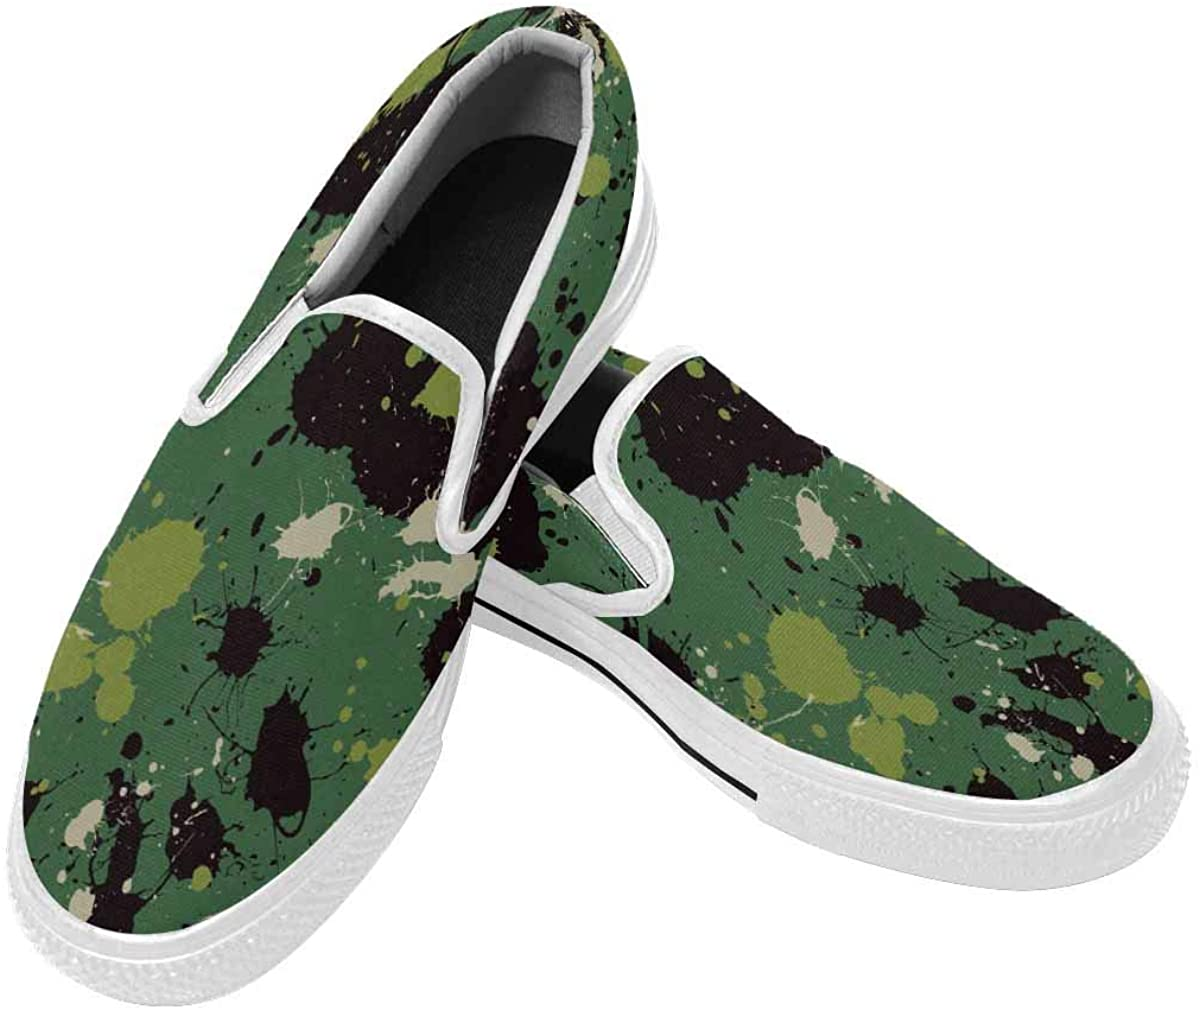 InterestPrint Splatter Camouflage Mens Canvas Shoes Slip on Shoes Non Slip Casual Loafers Flat Outdoor Sneakers US12